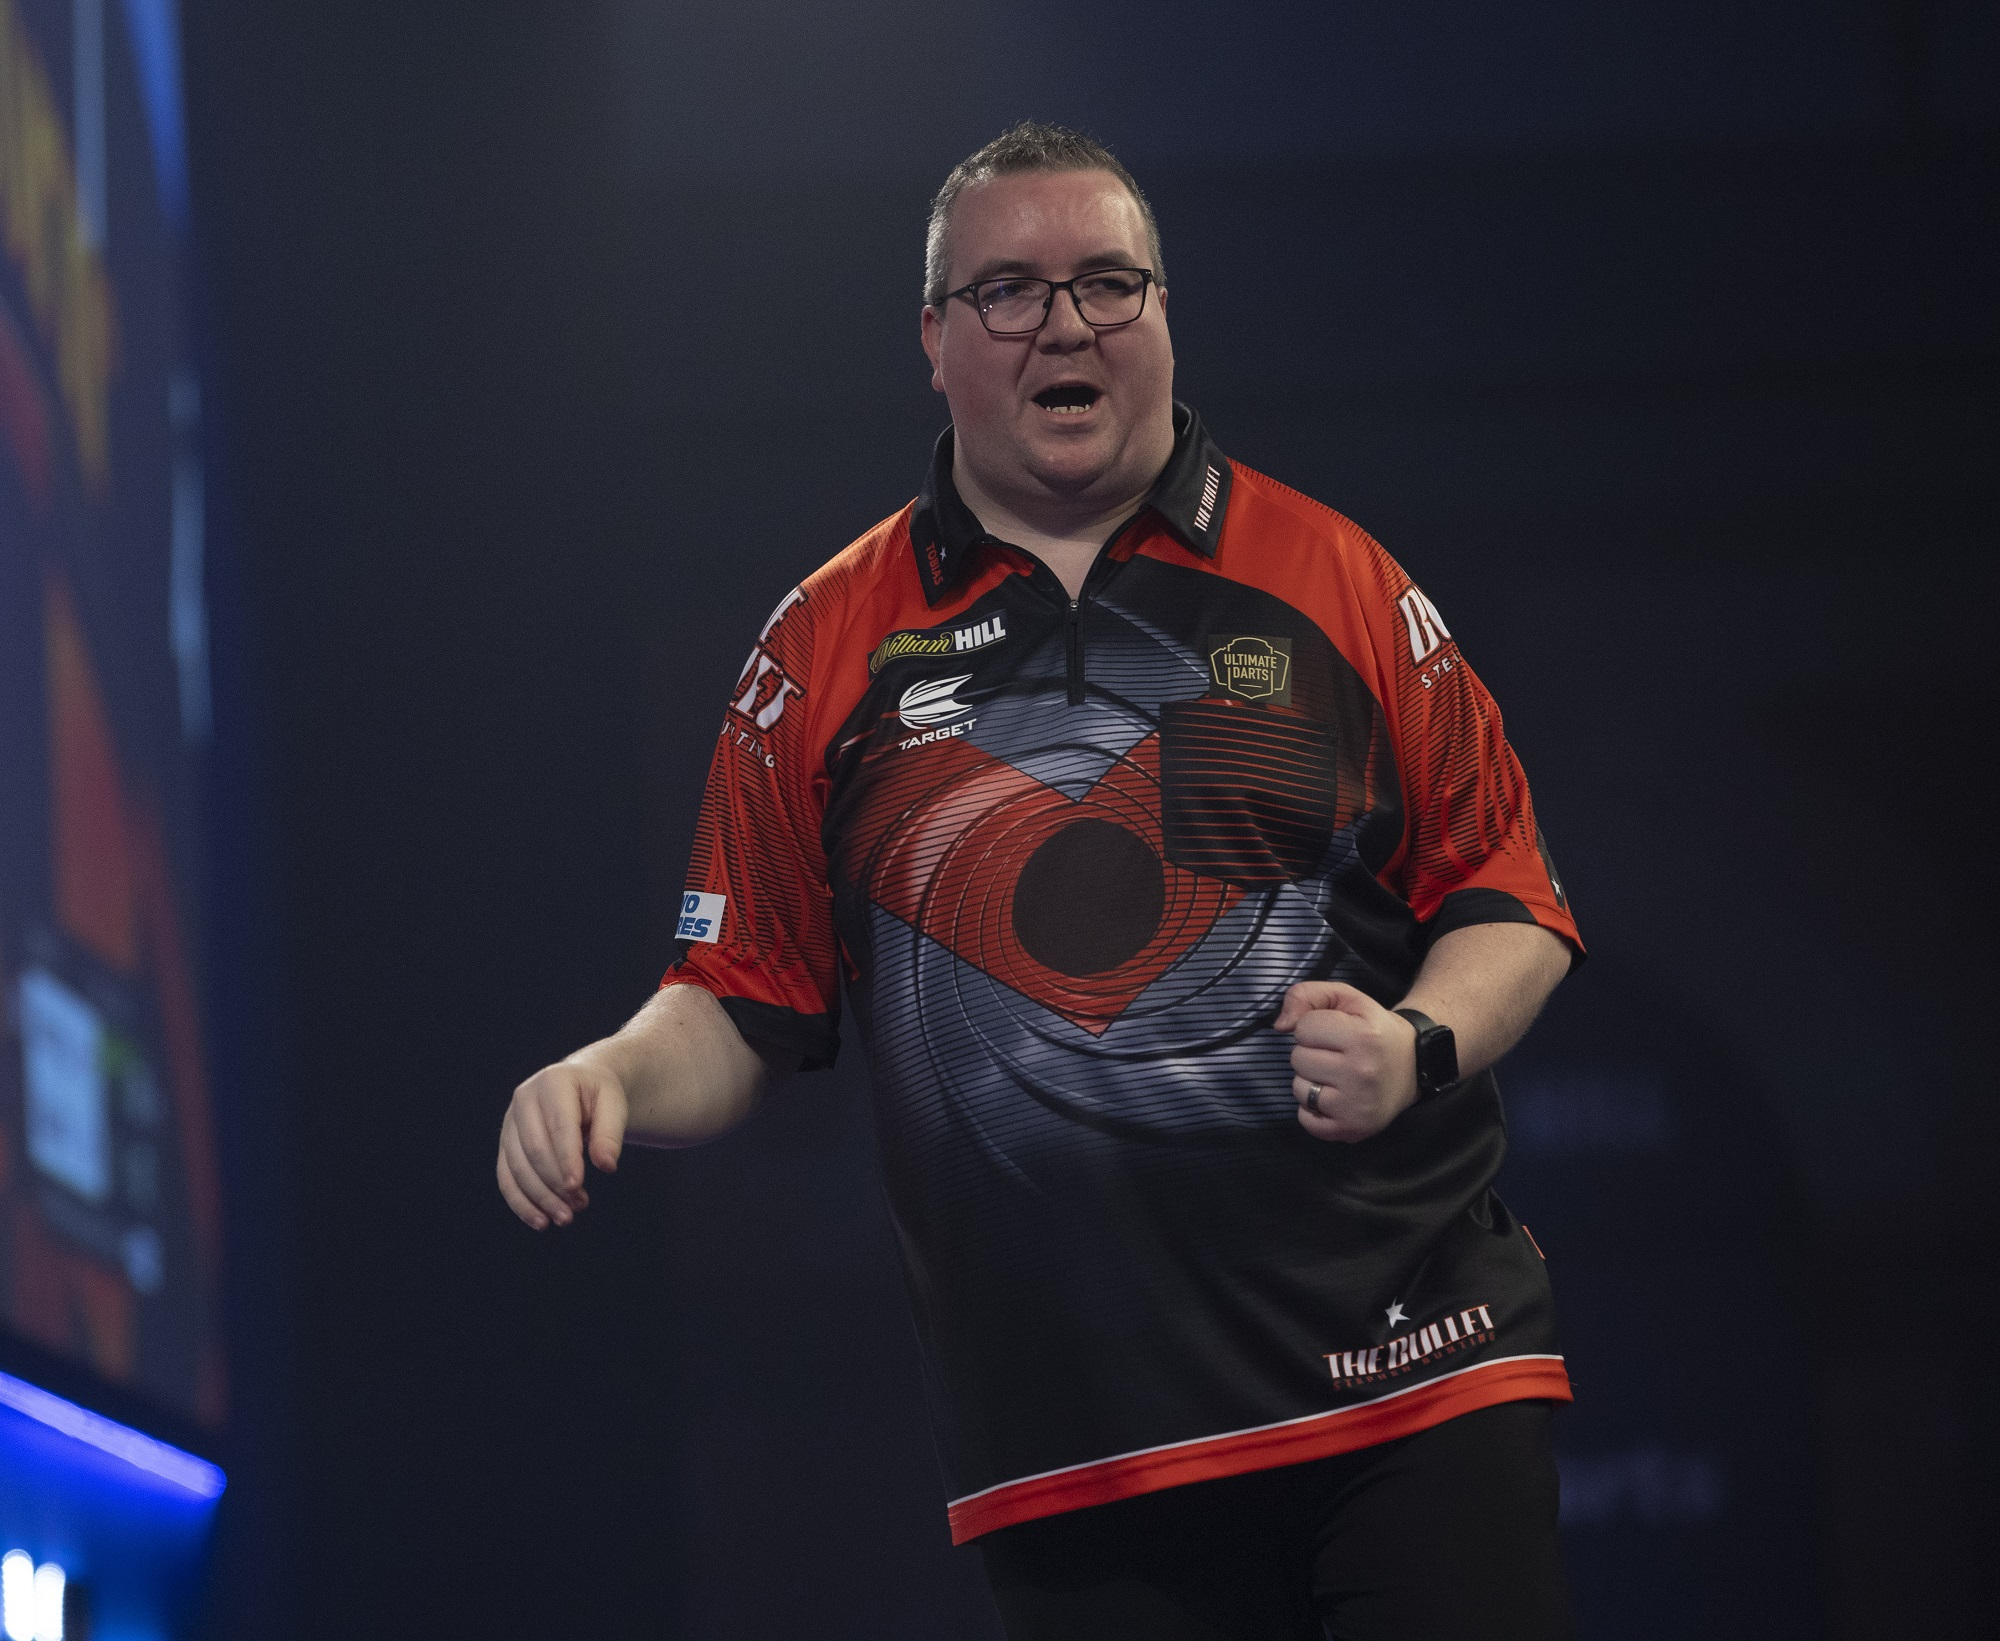 """Stephen Bunting on getting no prize money """"lessons need to be learned."""""""